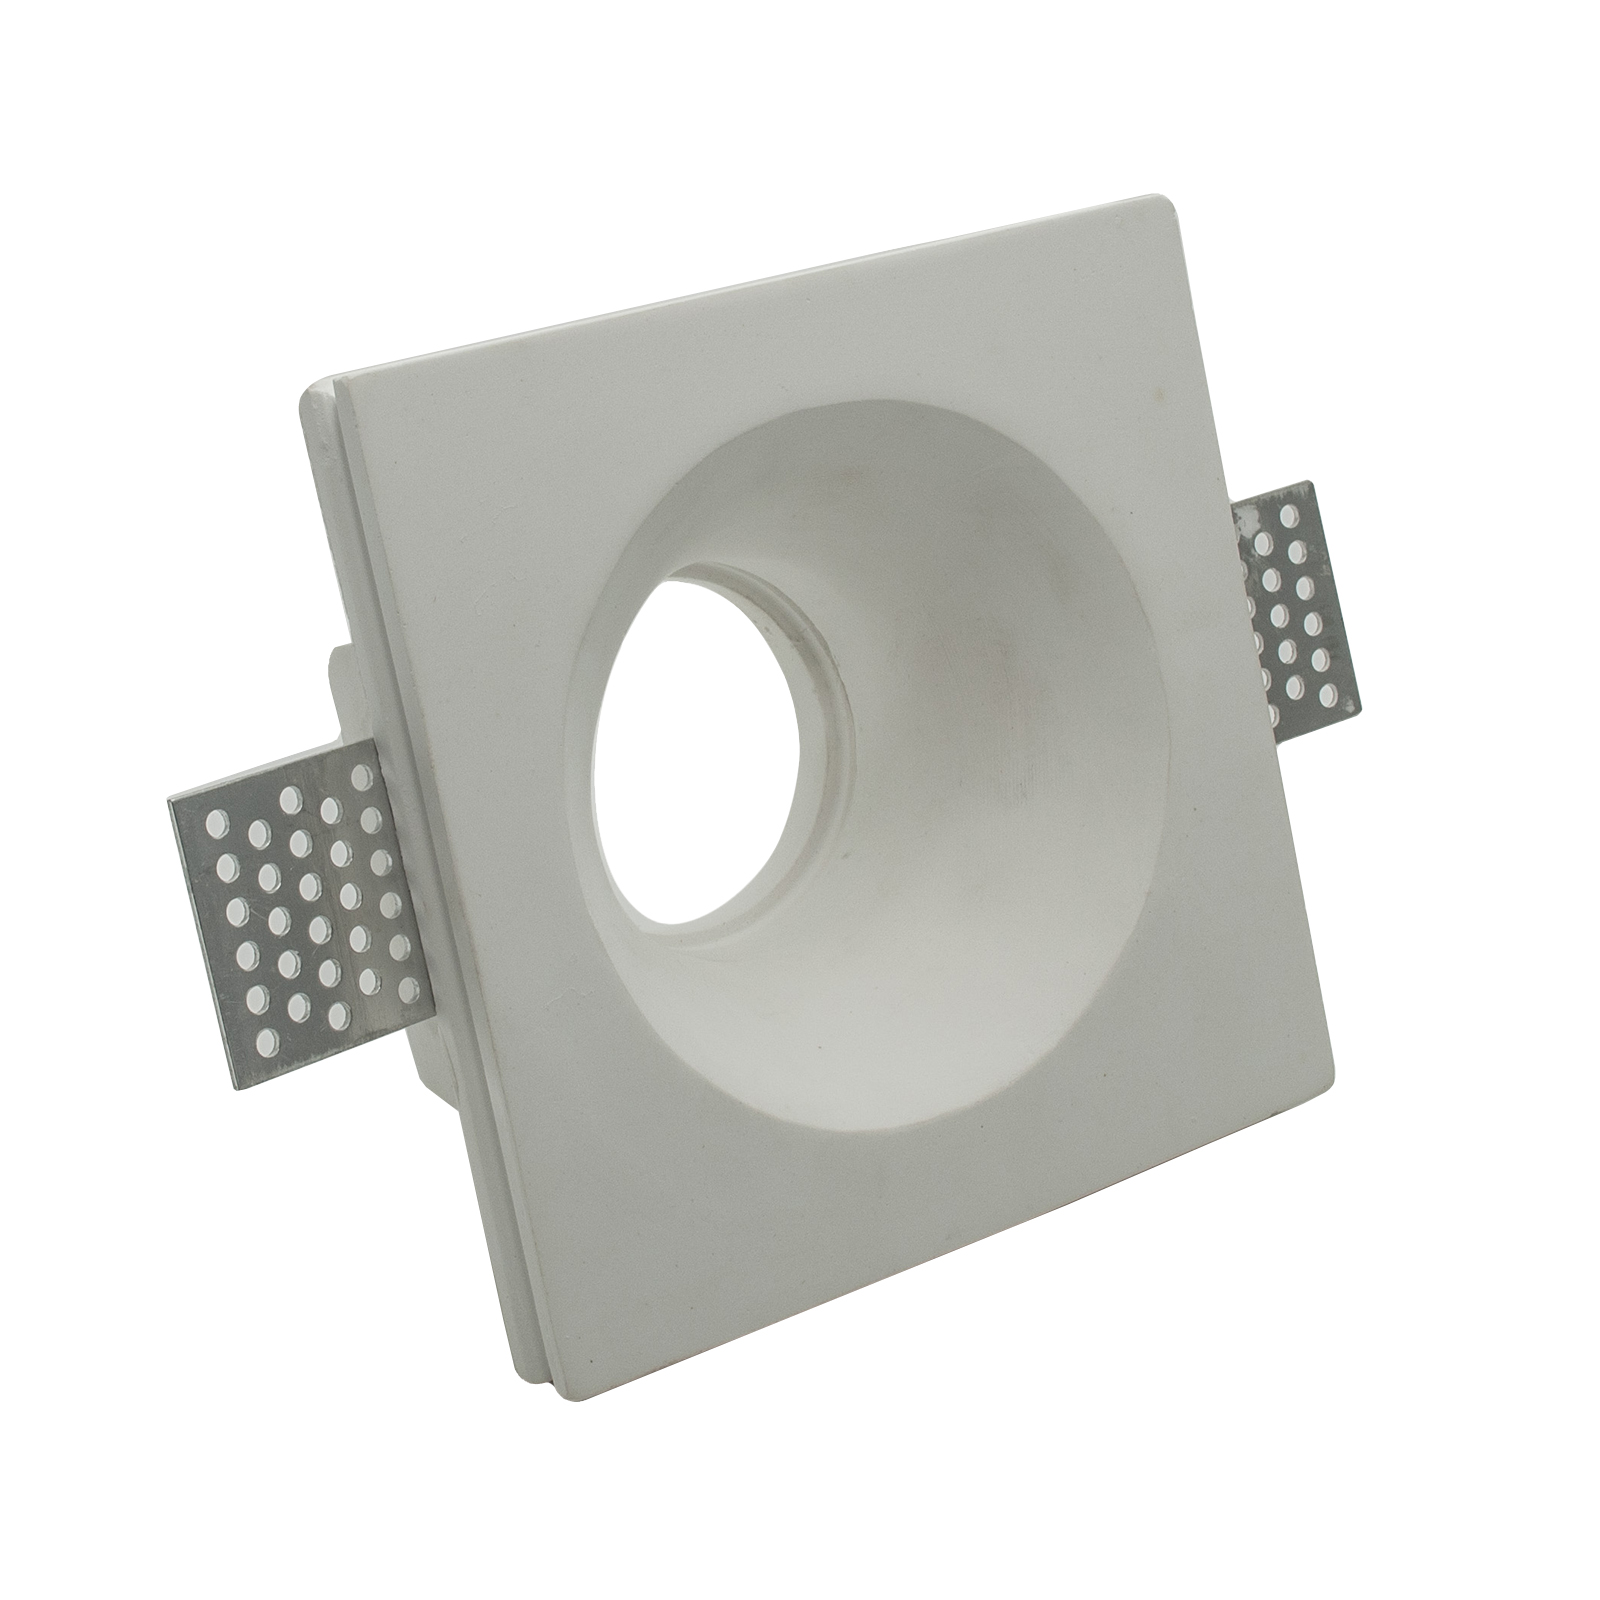 Door spotlight round plaster recessed concealed hole 10cm lamp holder LED GU10